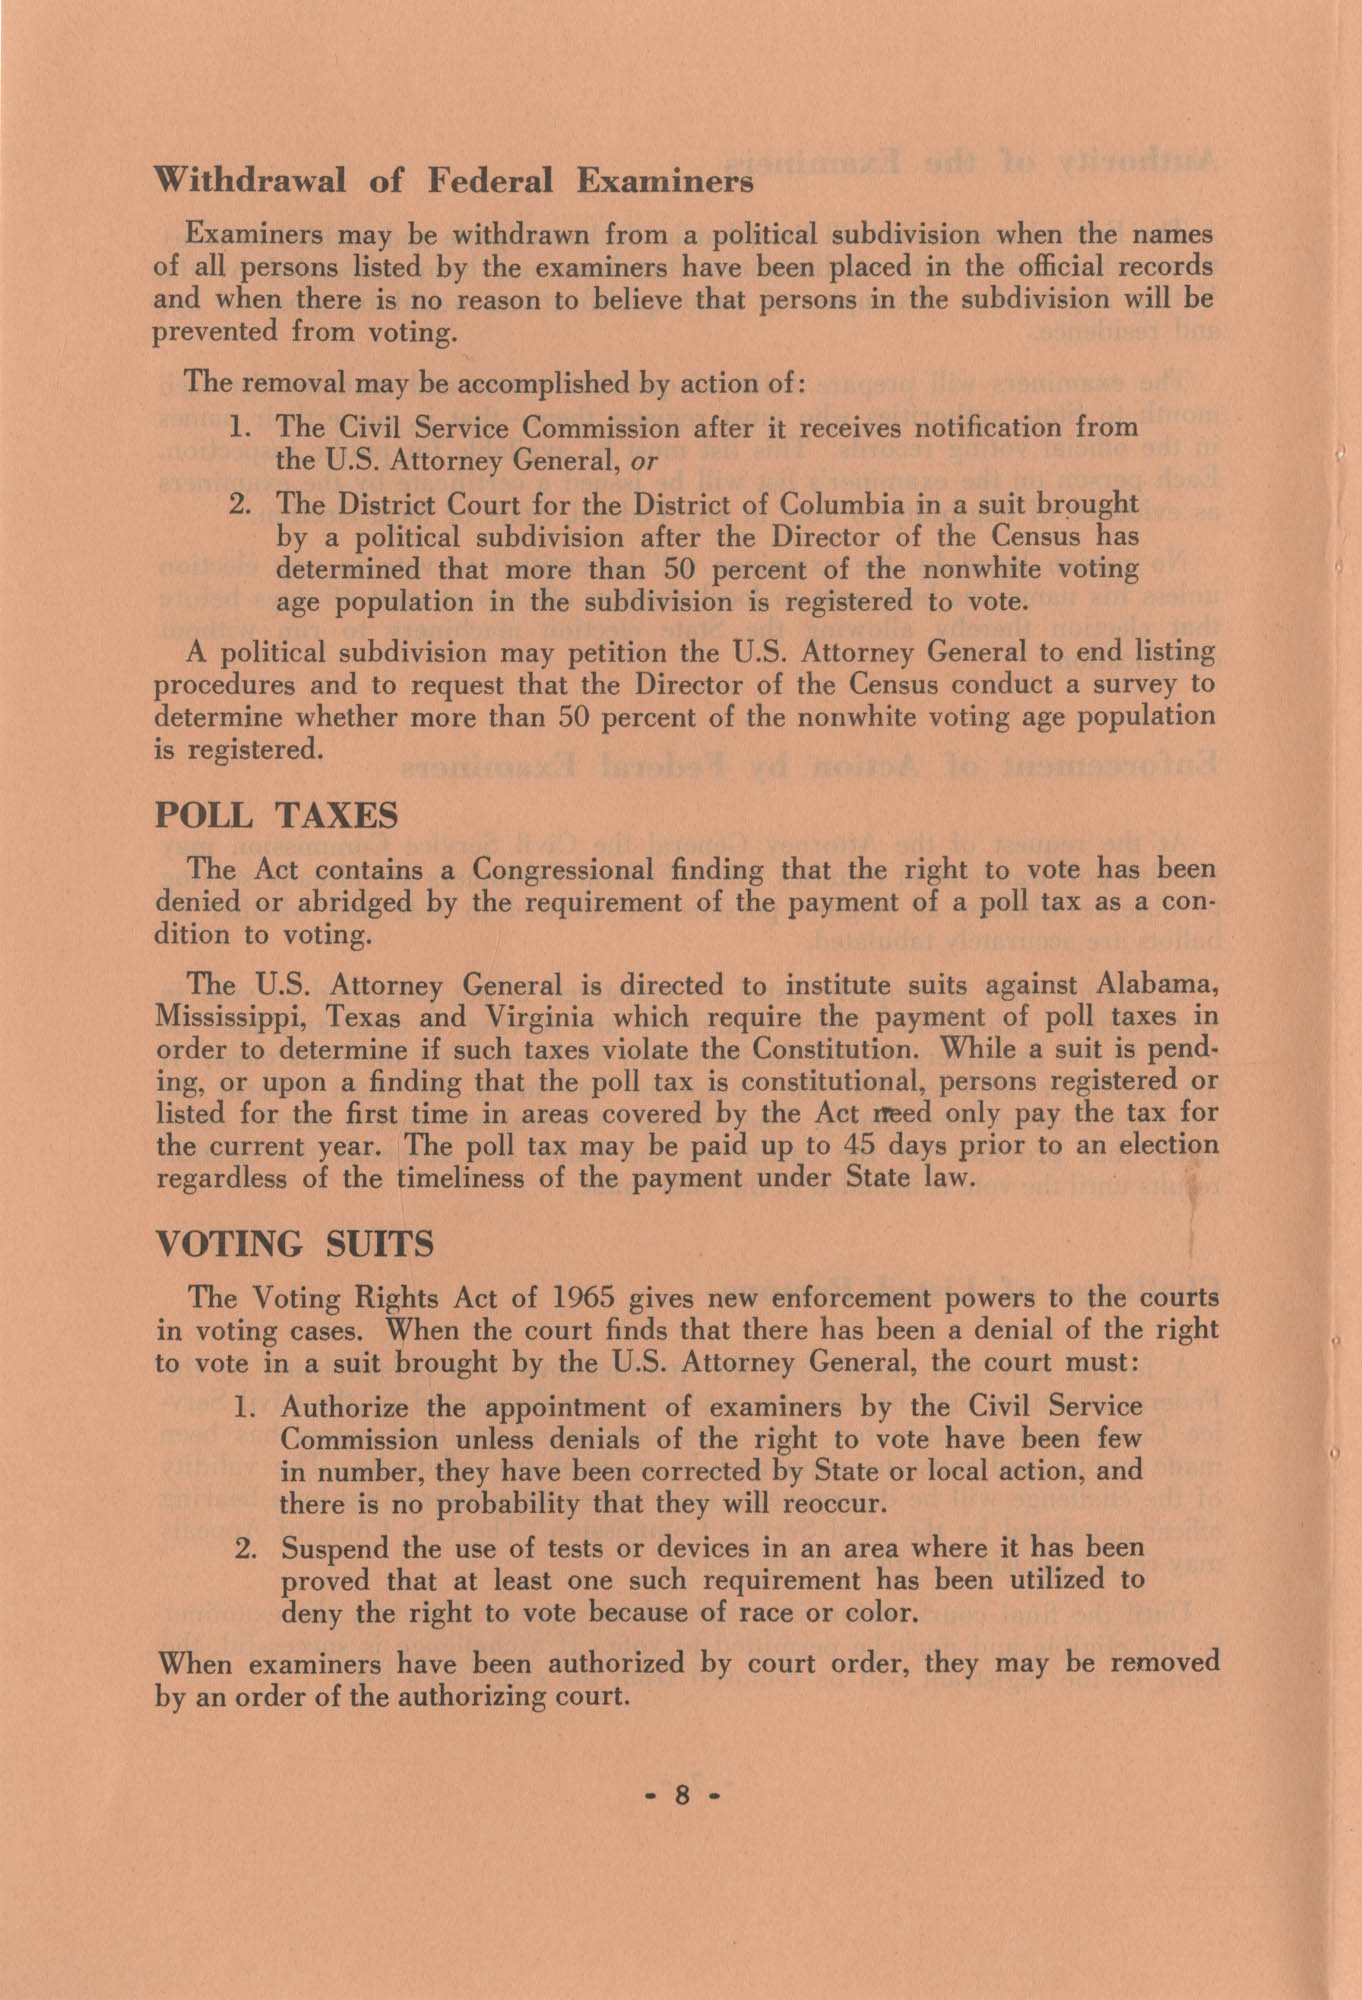 The Voting Rights Act of 1965, Page 8